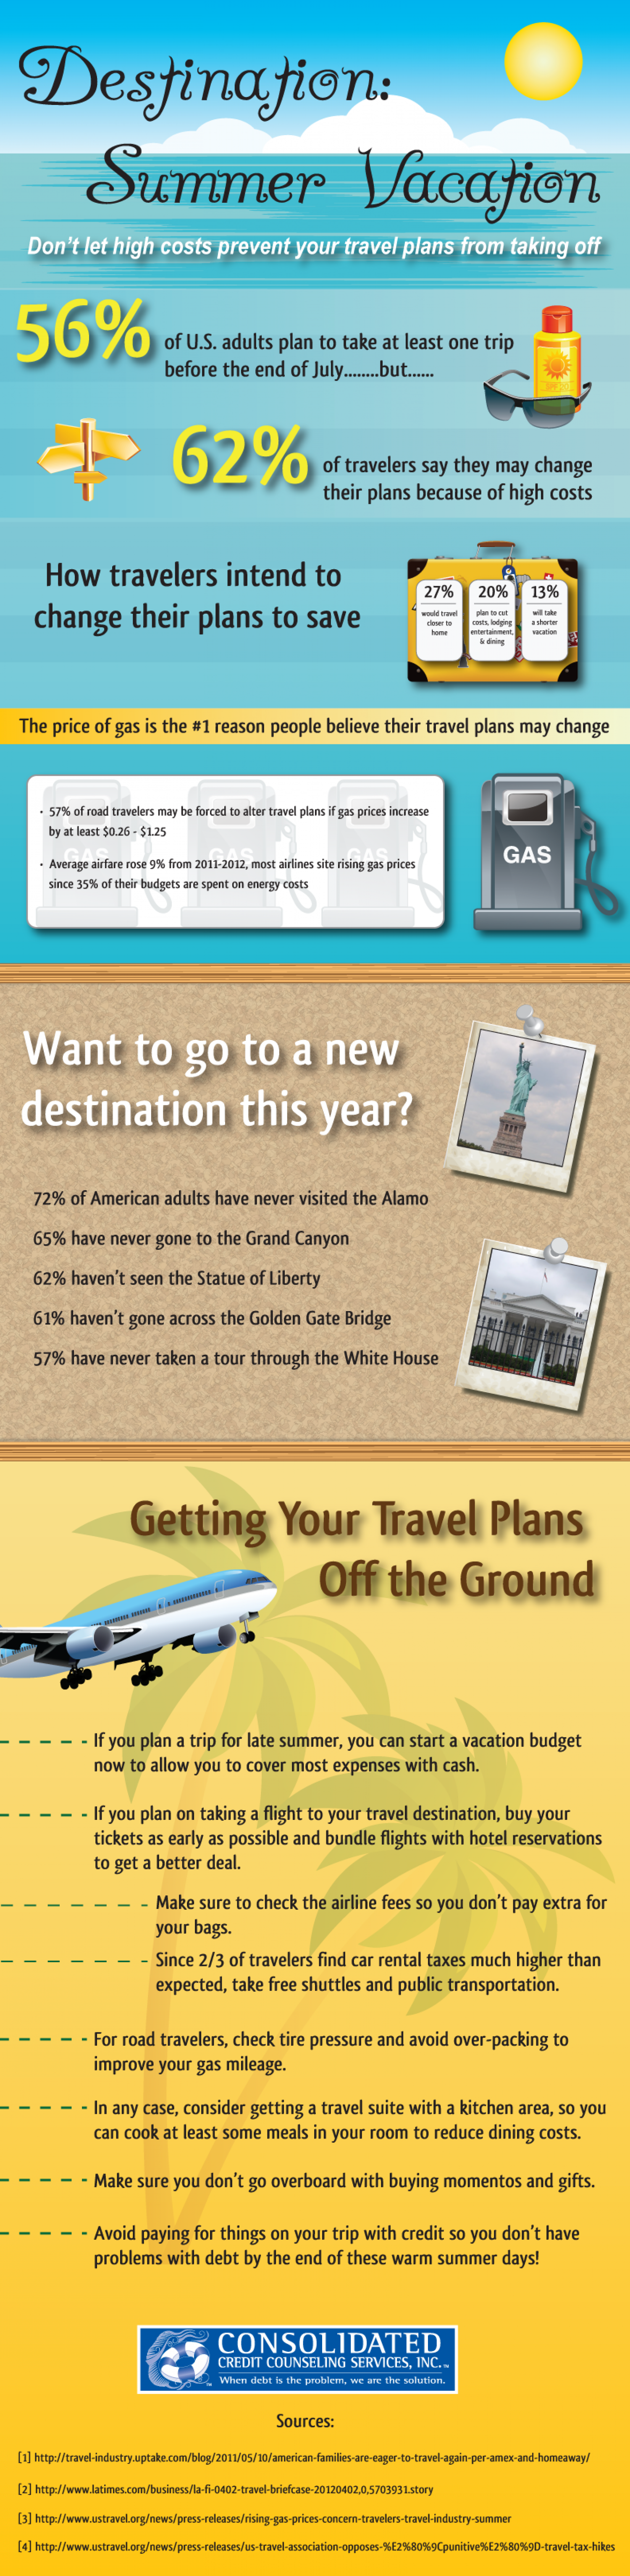 Summer Vacation: Will Rising Gas Prices Affect Travel Plans? Infographic